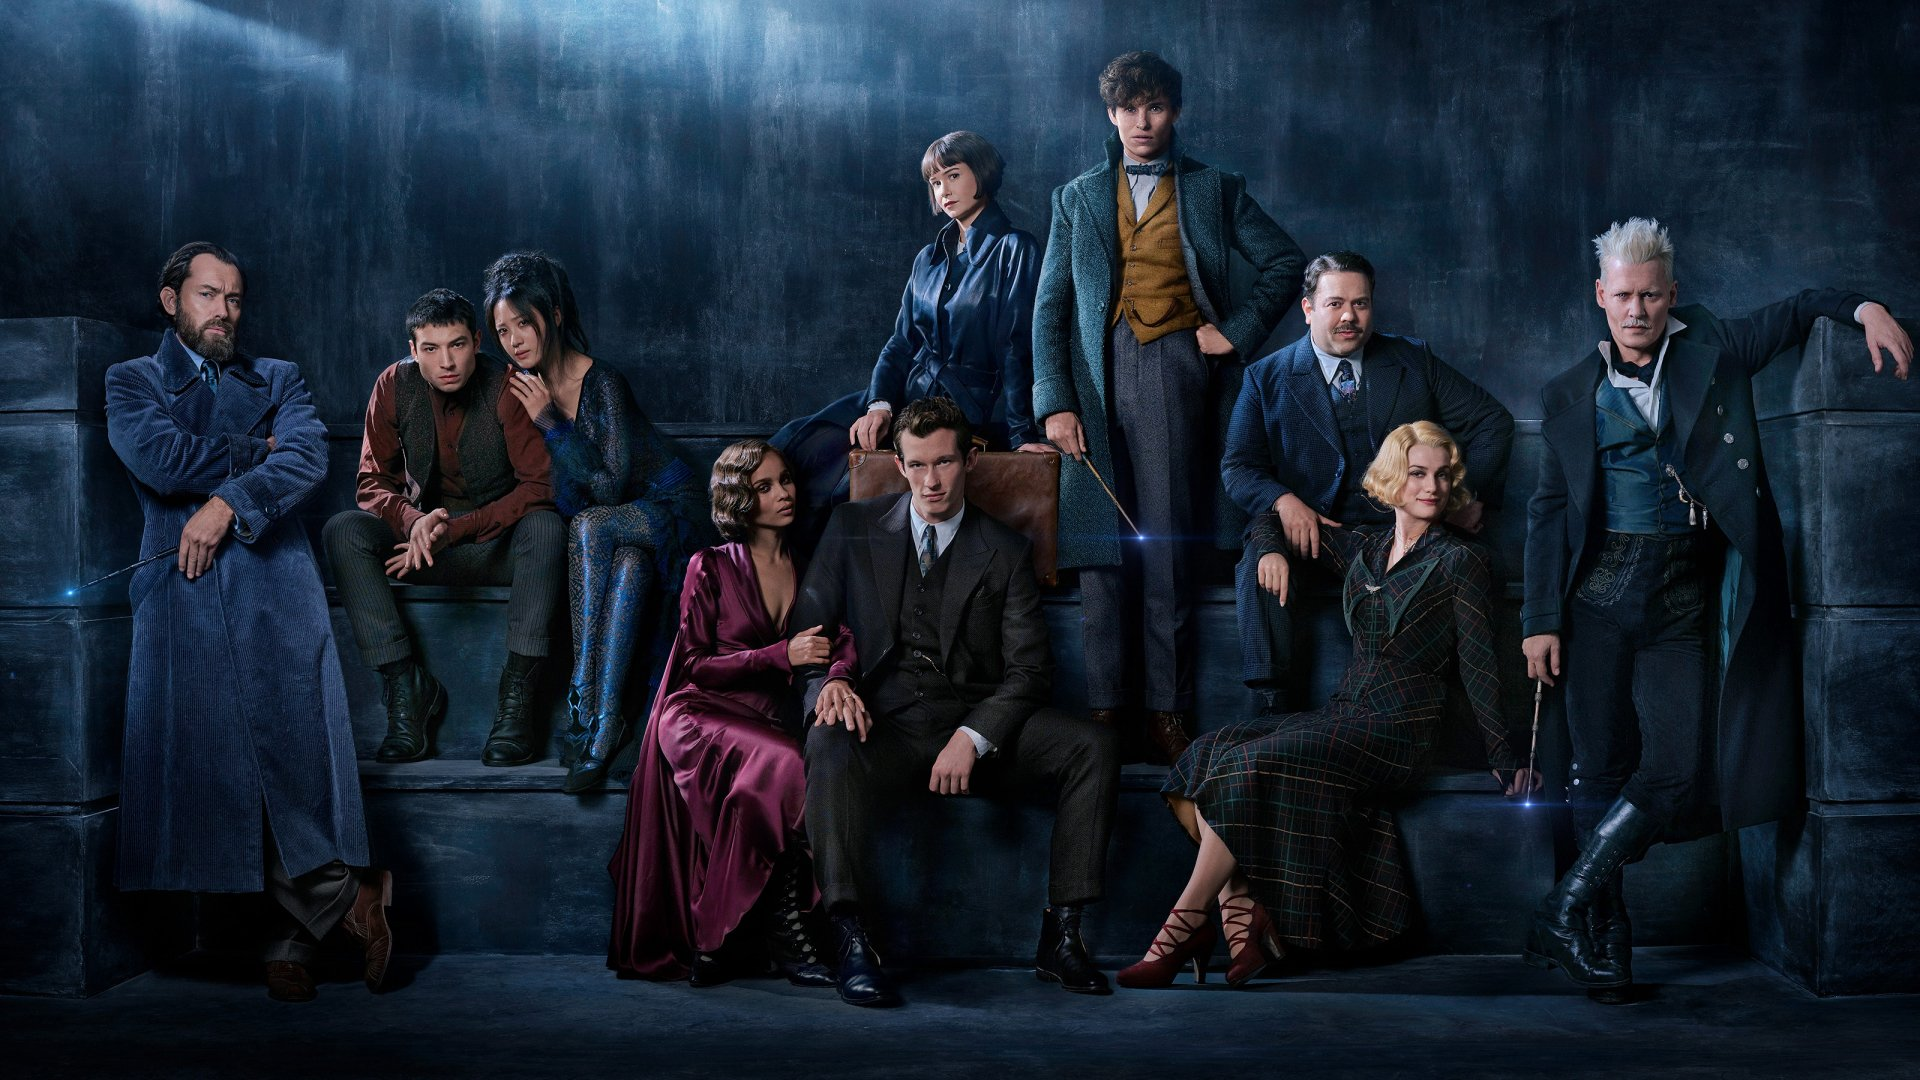 Fantastic Beasts: The Crimes of Grindelwald Wallpapers hd